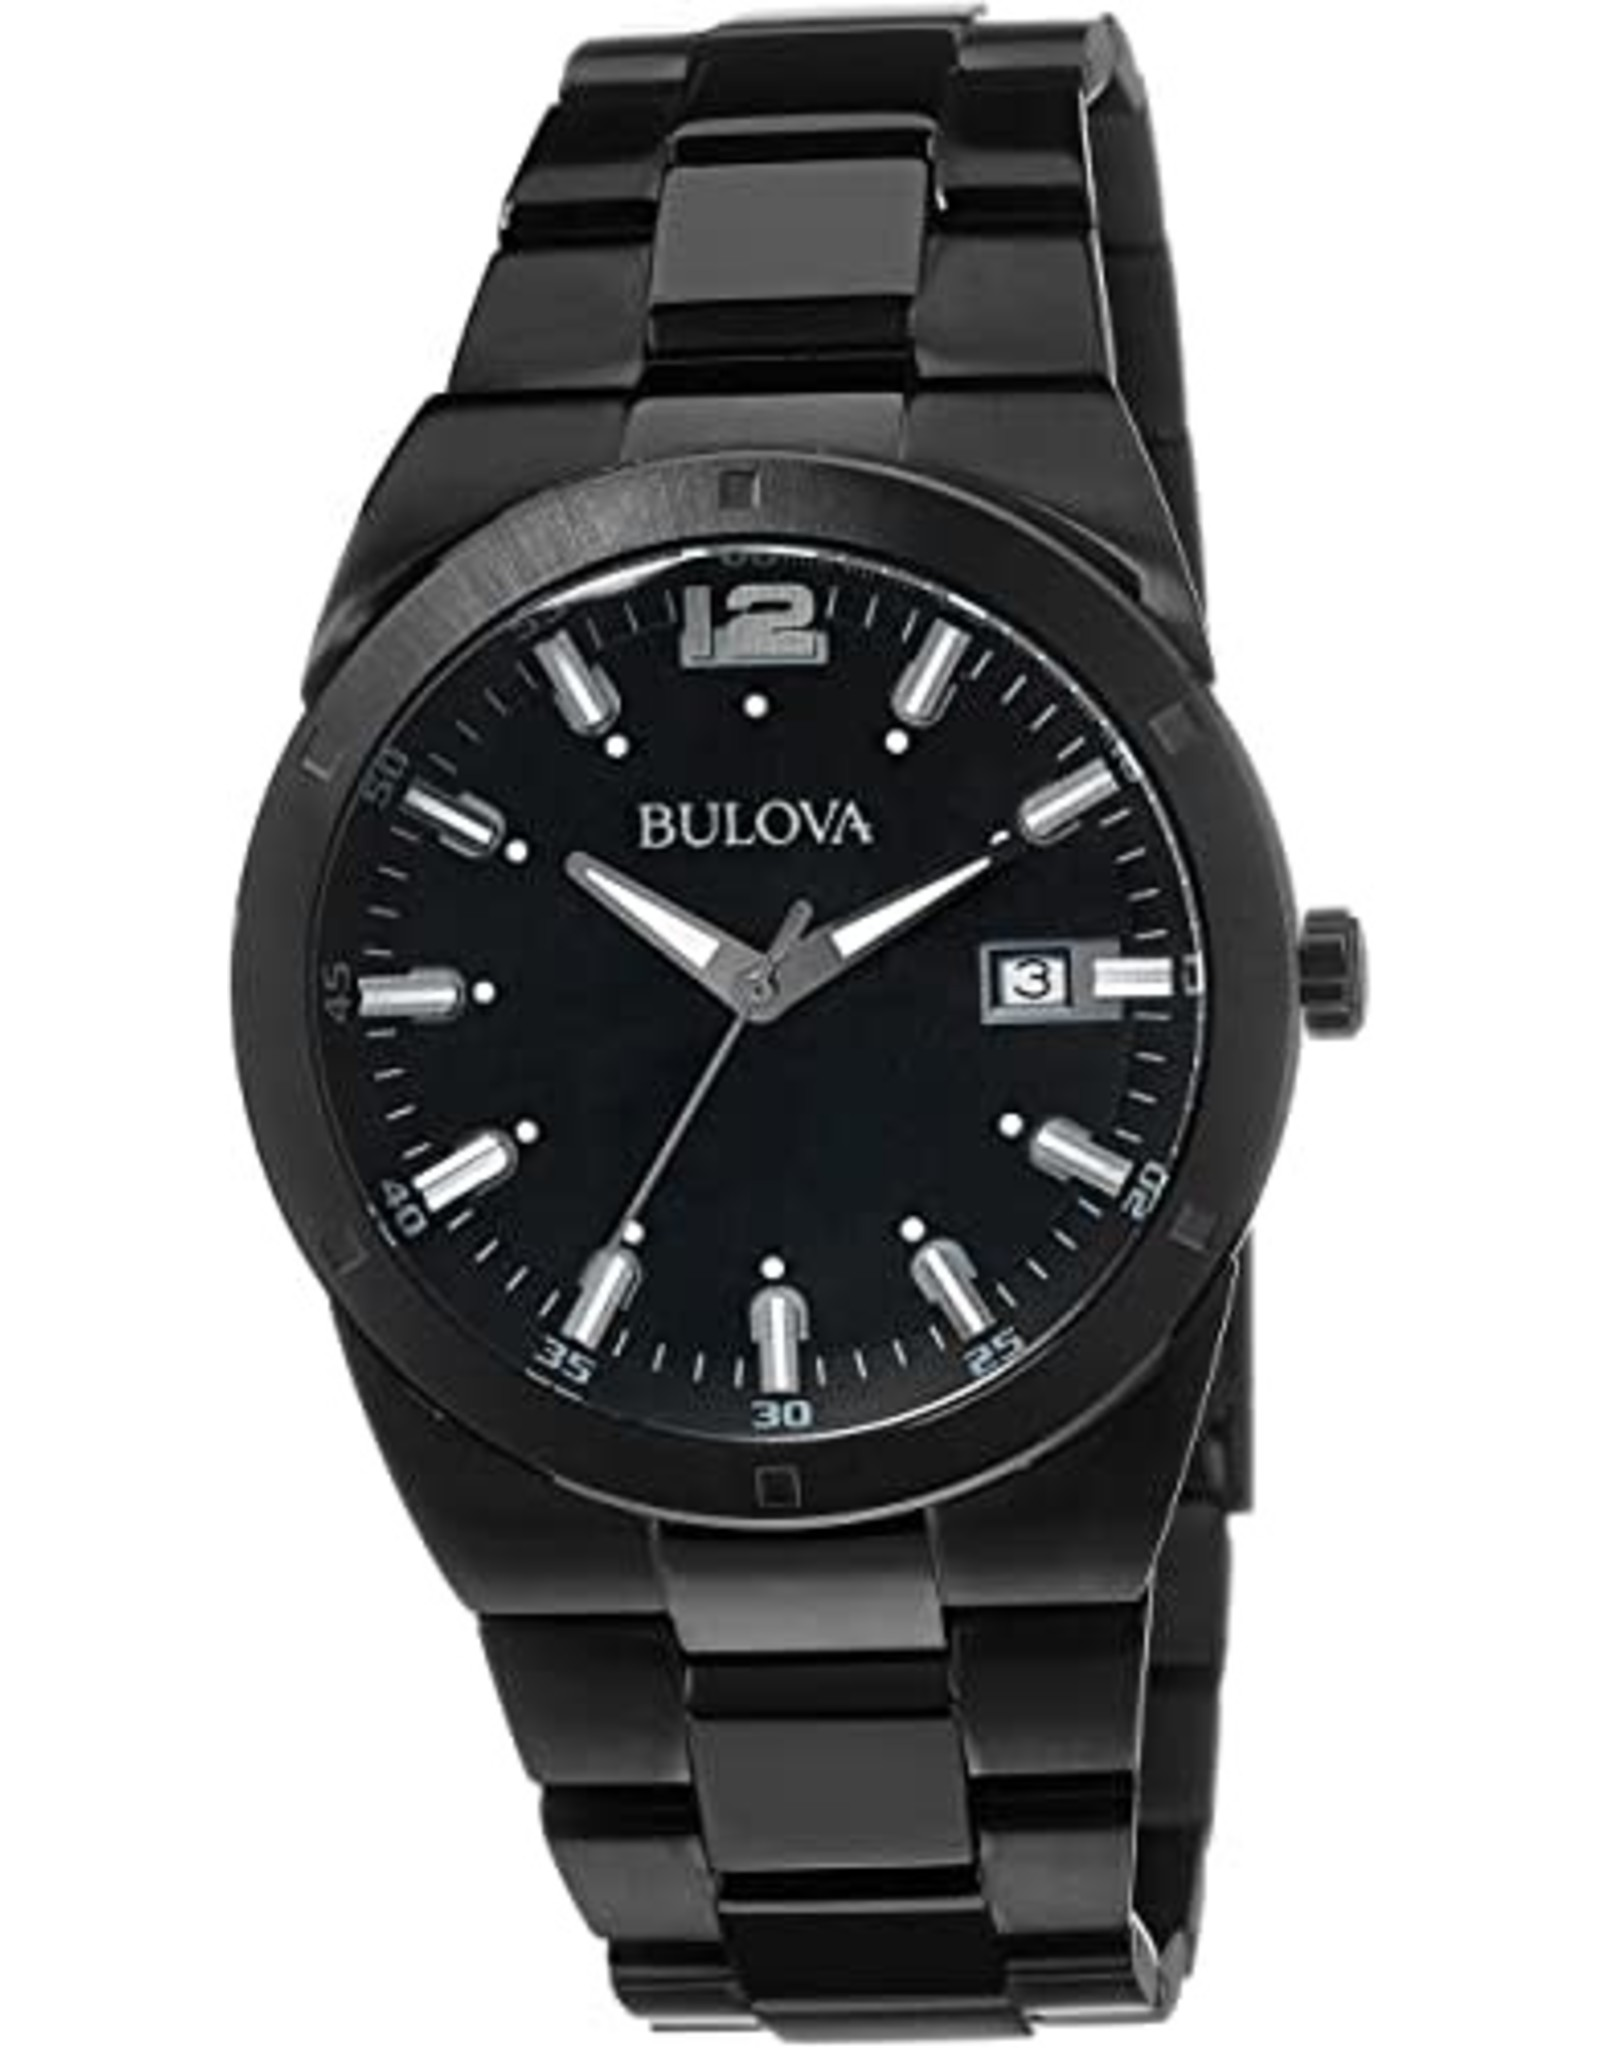 Men's Bulova Black Classic Display Watch